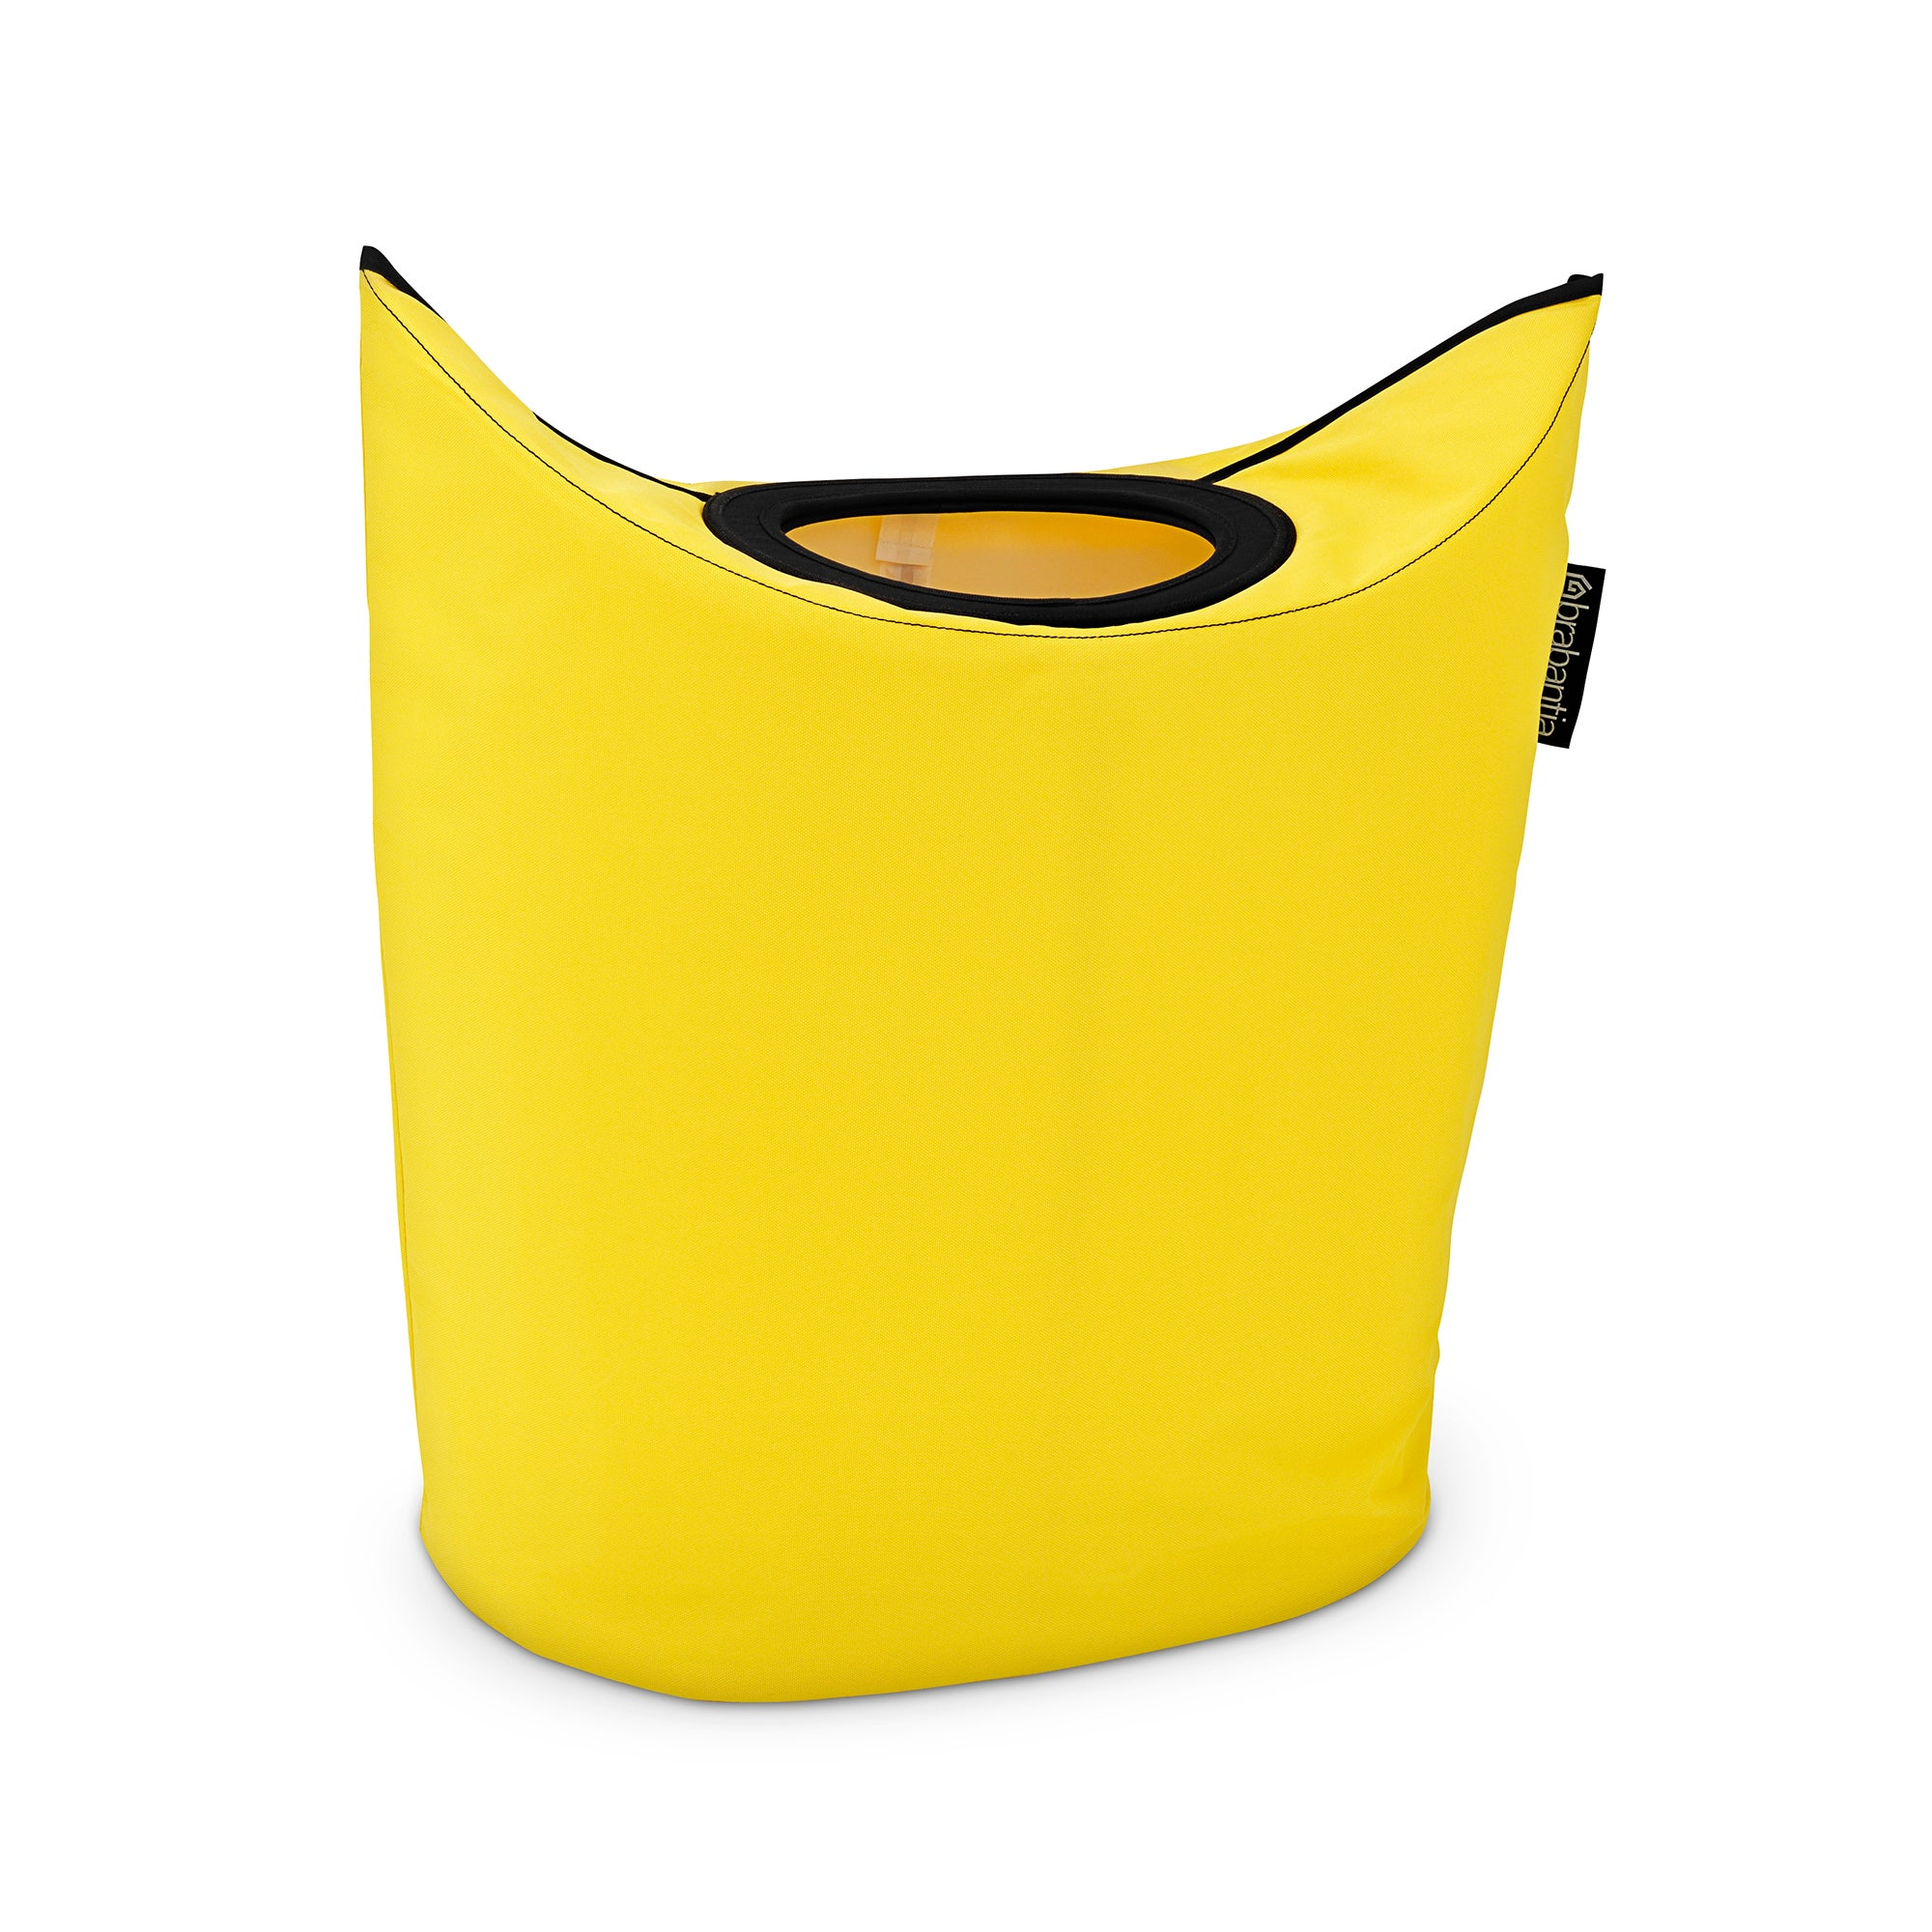 Brabantia Yellow 50 Litre Laundry Bag